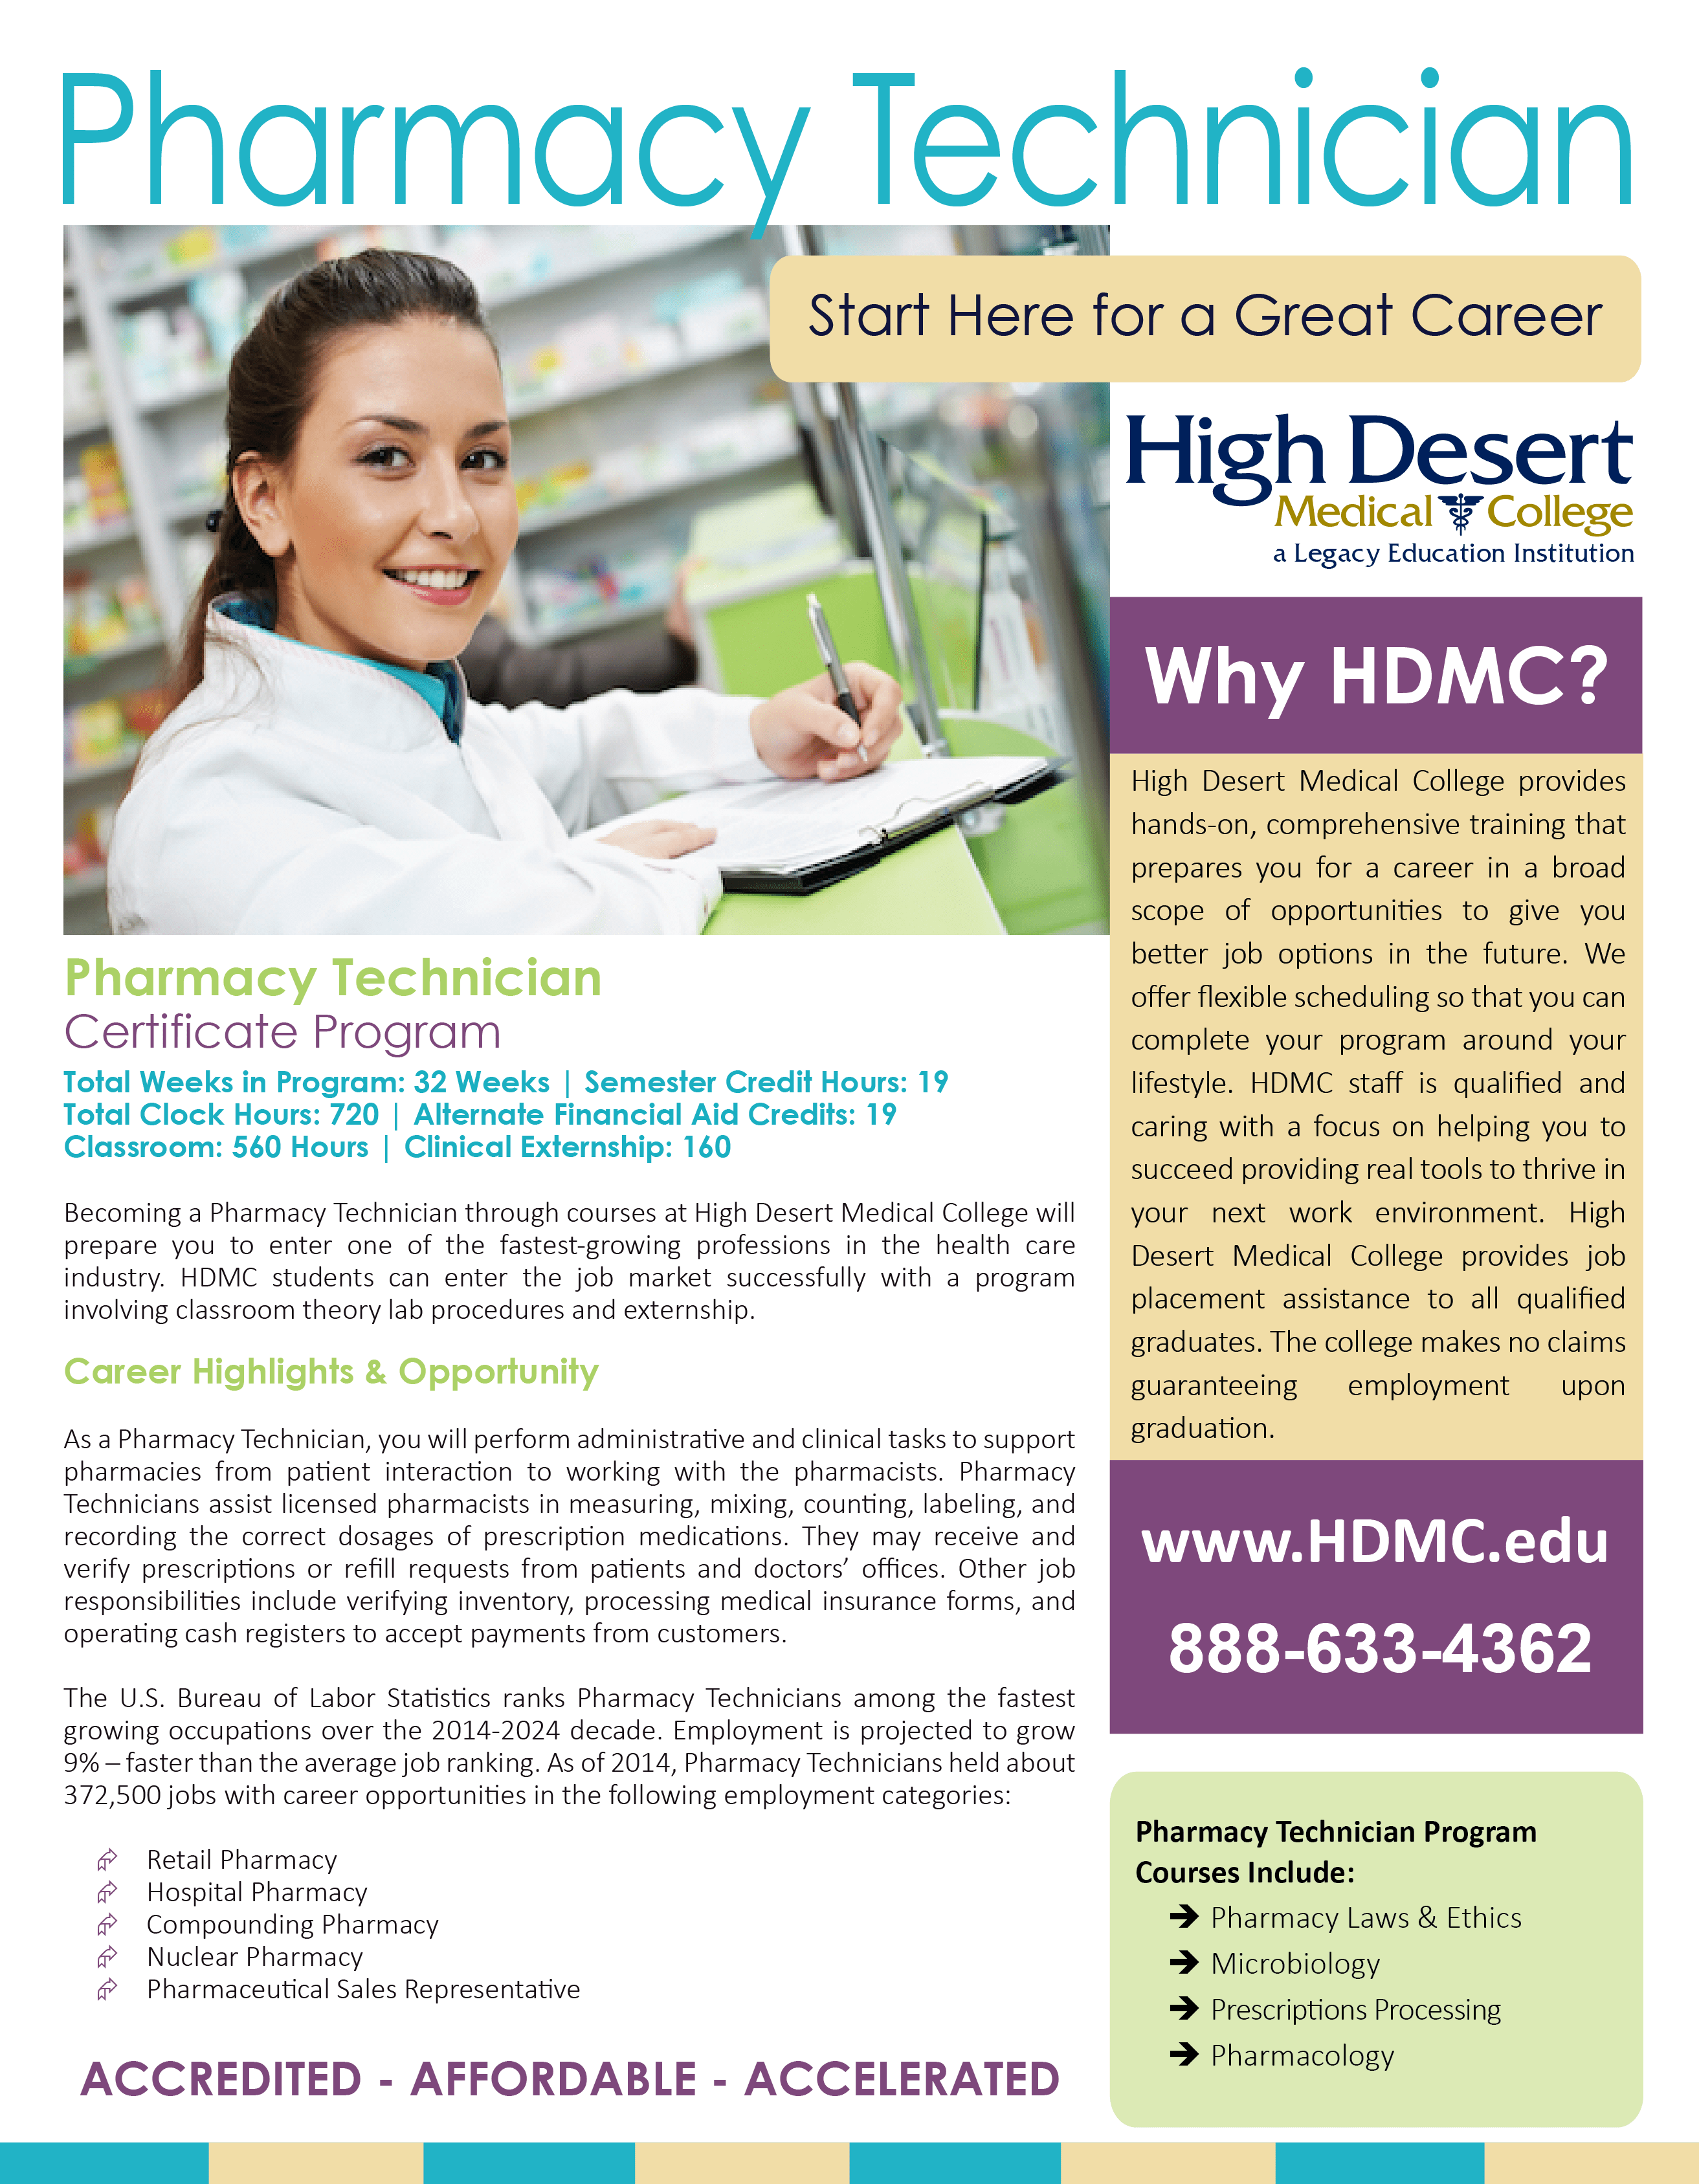 Five Reasons To Study For Your Pharmacy Tech Certification At Hdmc